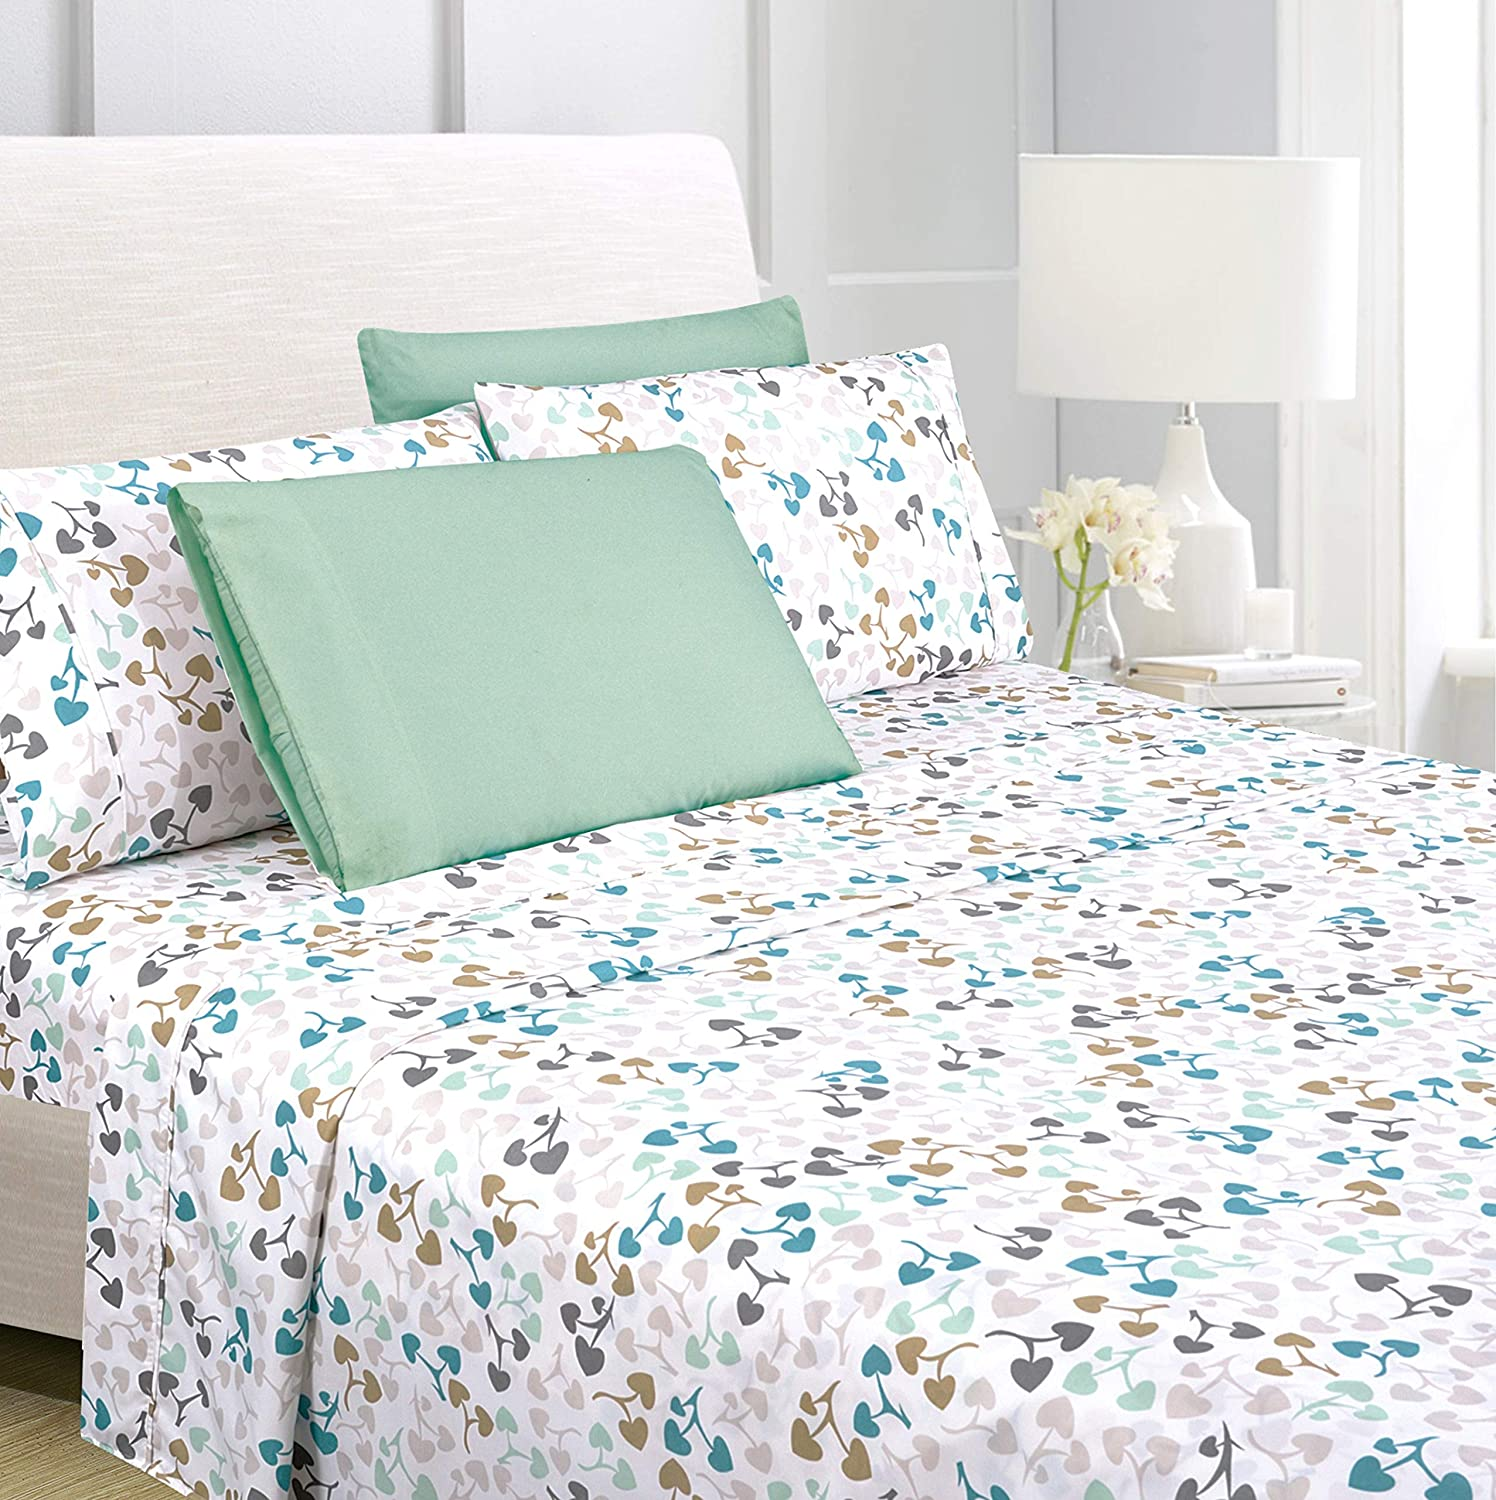 American Home Collection 6 Piece Bed Sheet Set Super Soft Brushed Microfiber - 14